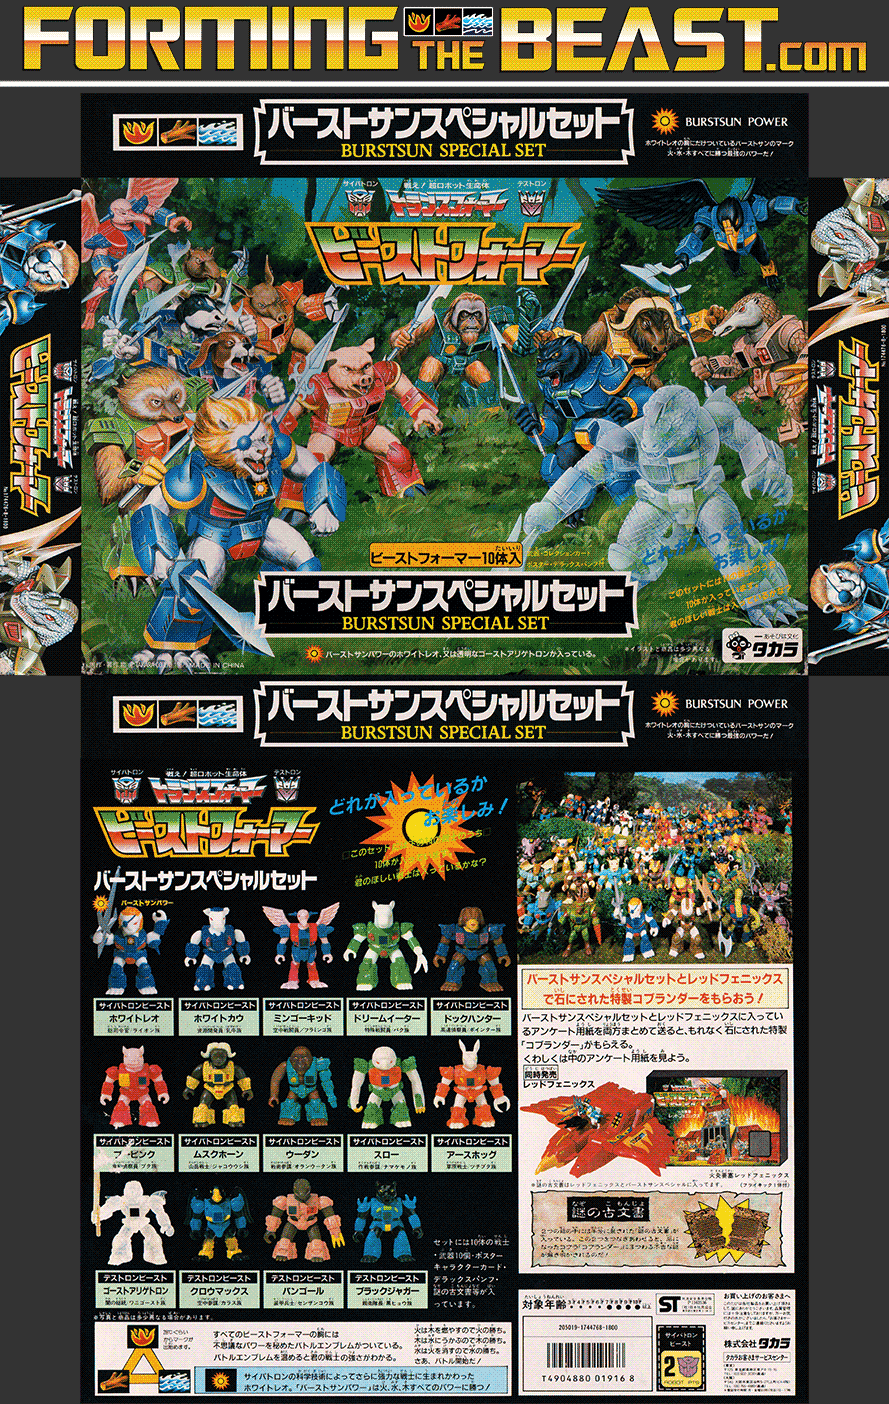 Beastformers Burstsun Special Set Box Scan